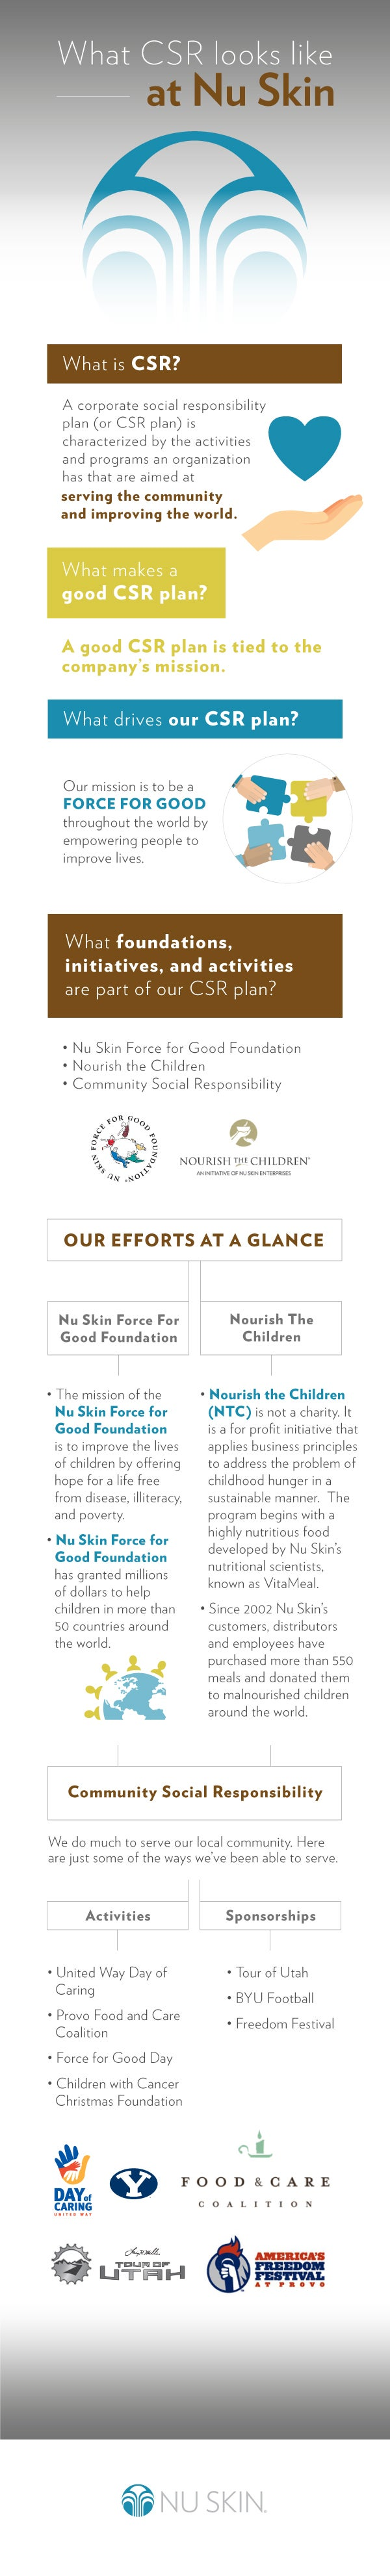 What CSR looks like at Nu Skin infographic